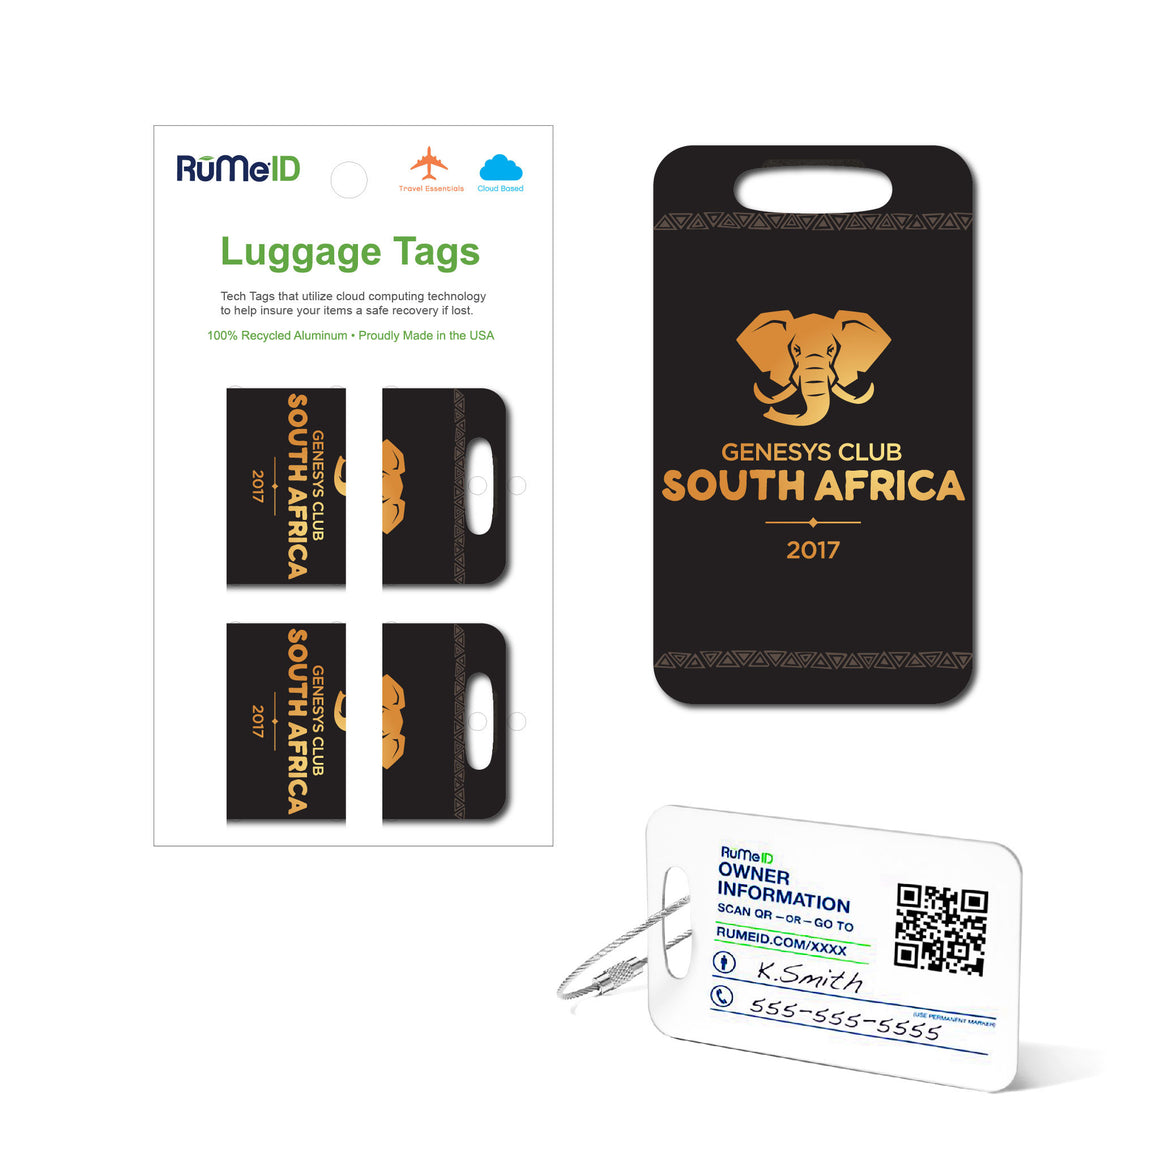 RuMeID Luggage Tags